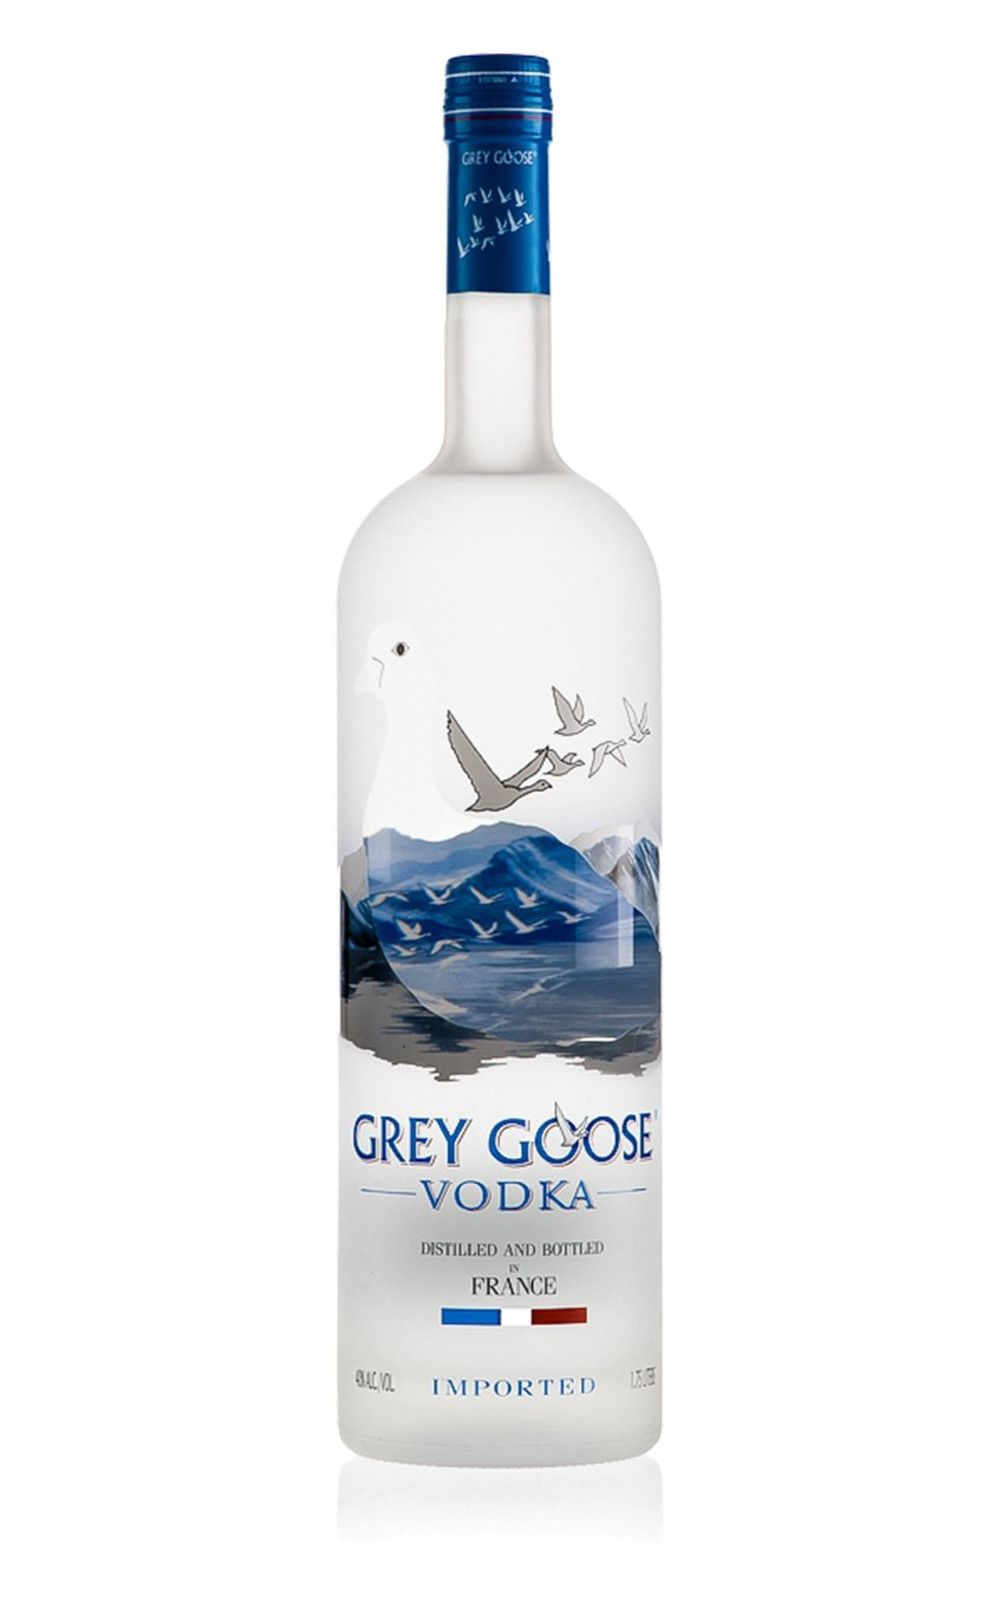 The best in the world vodka Gray Goose